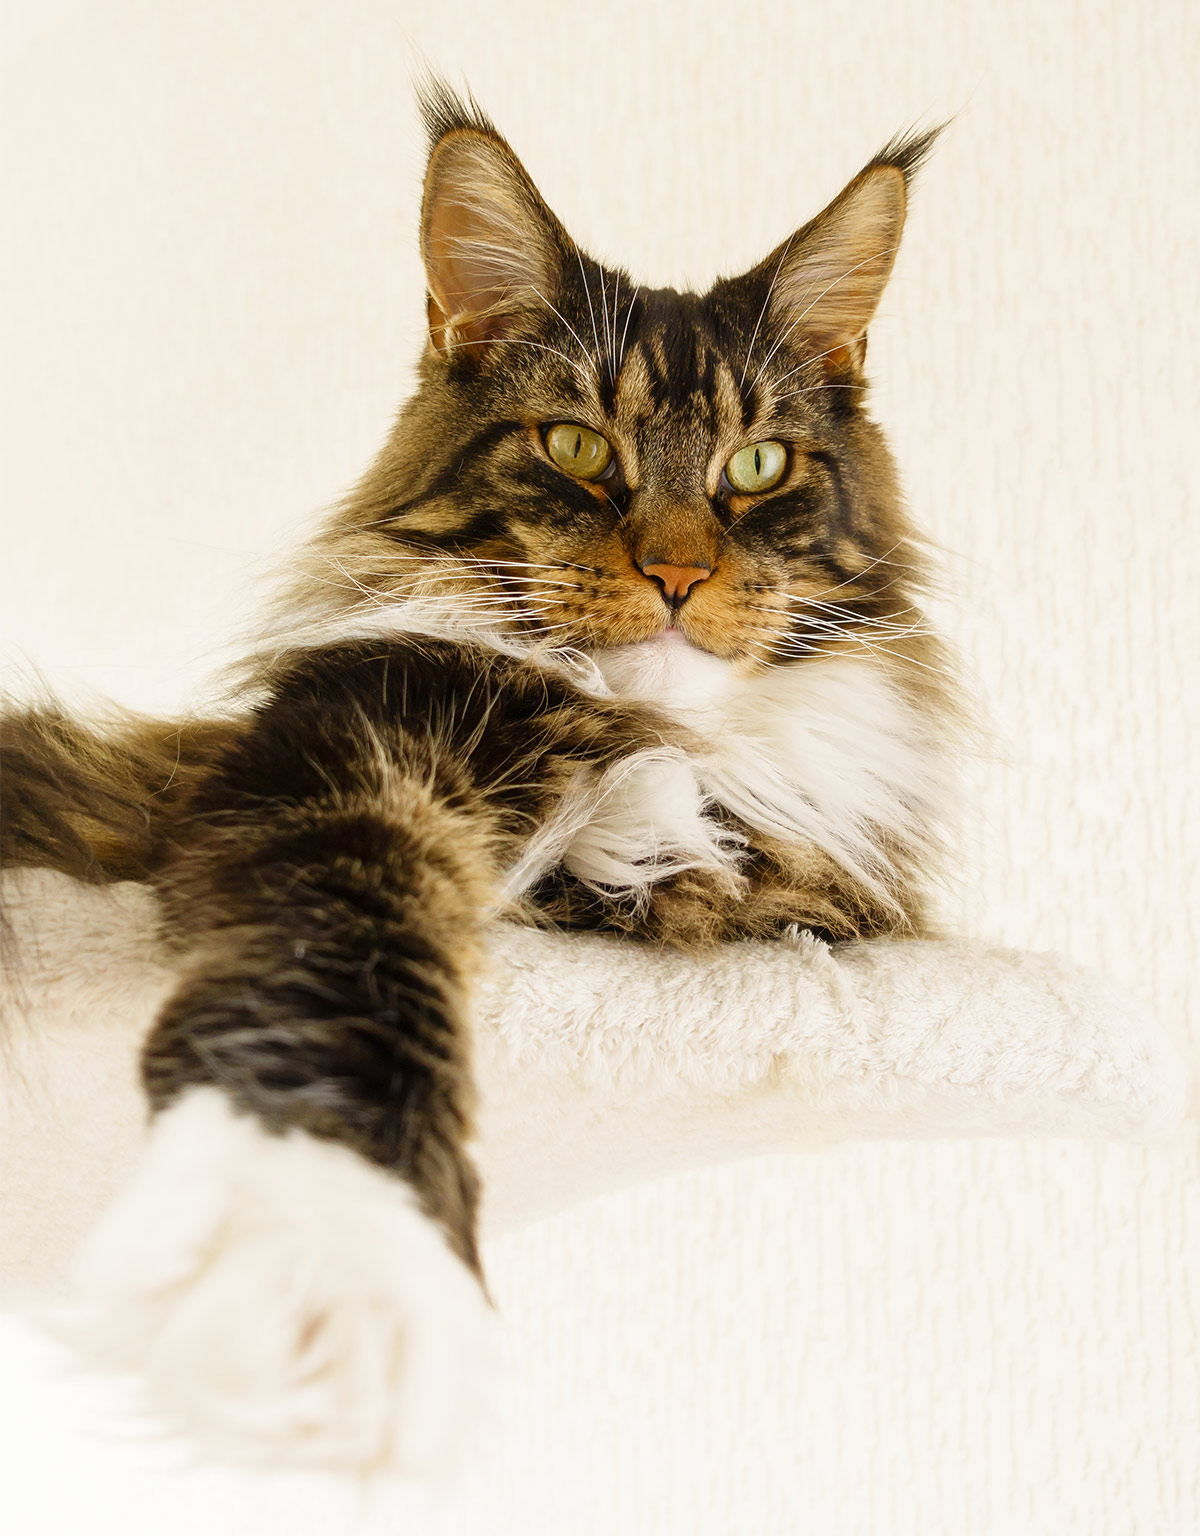 Pictures of Maine Coon Cats paws